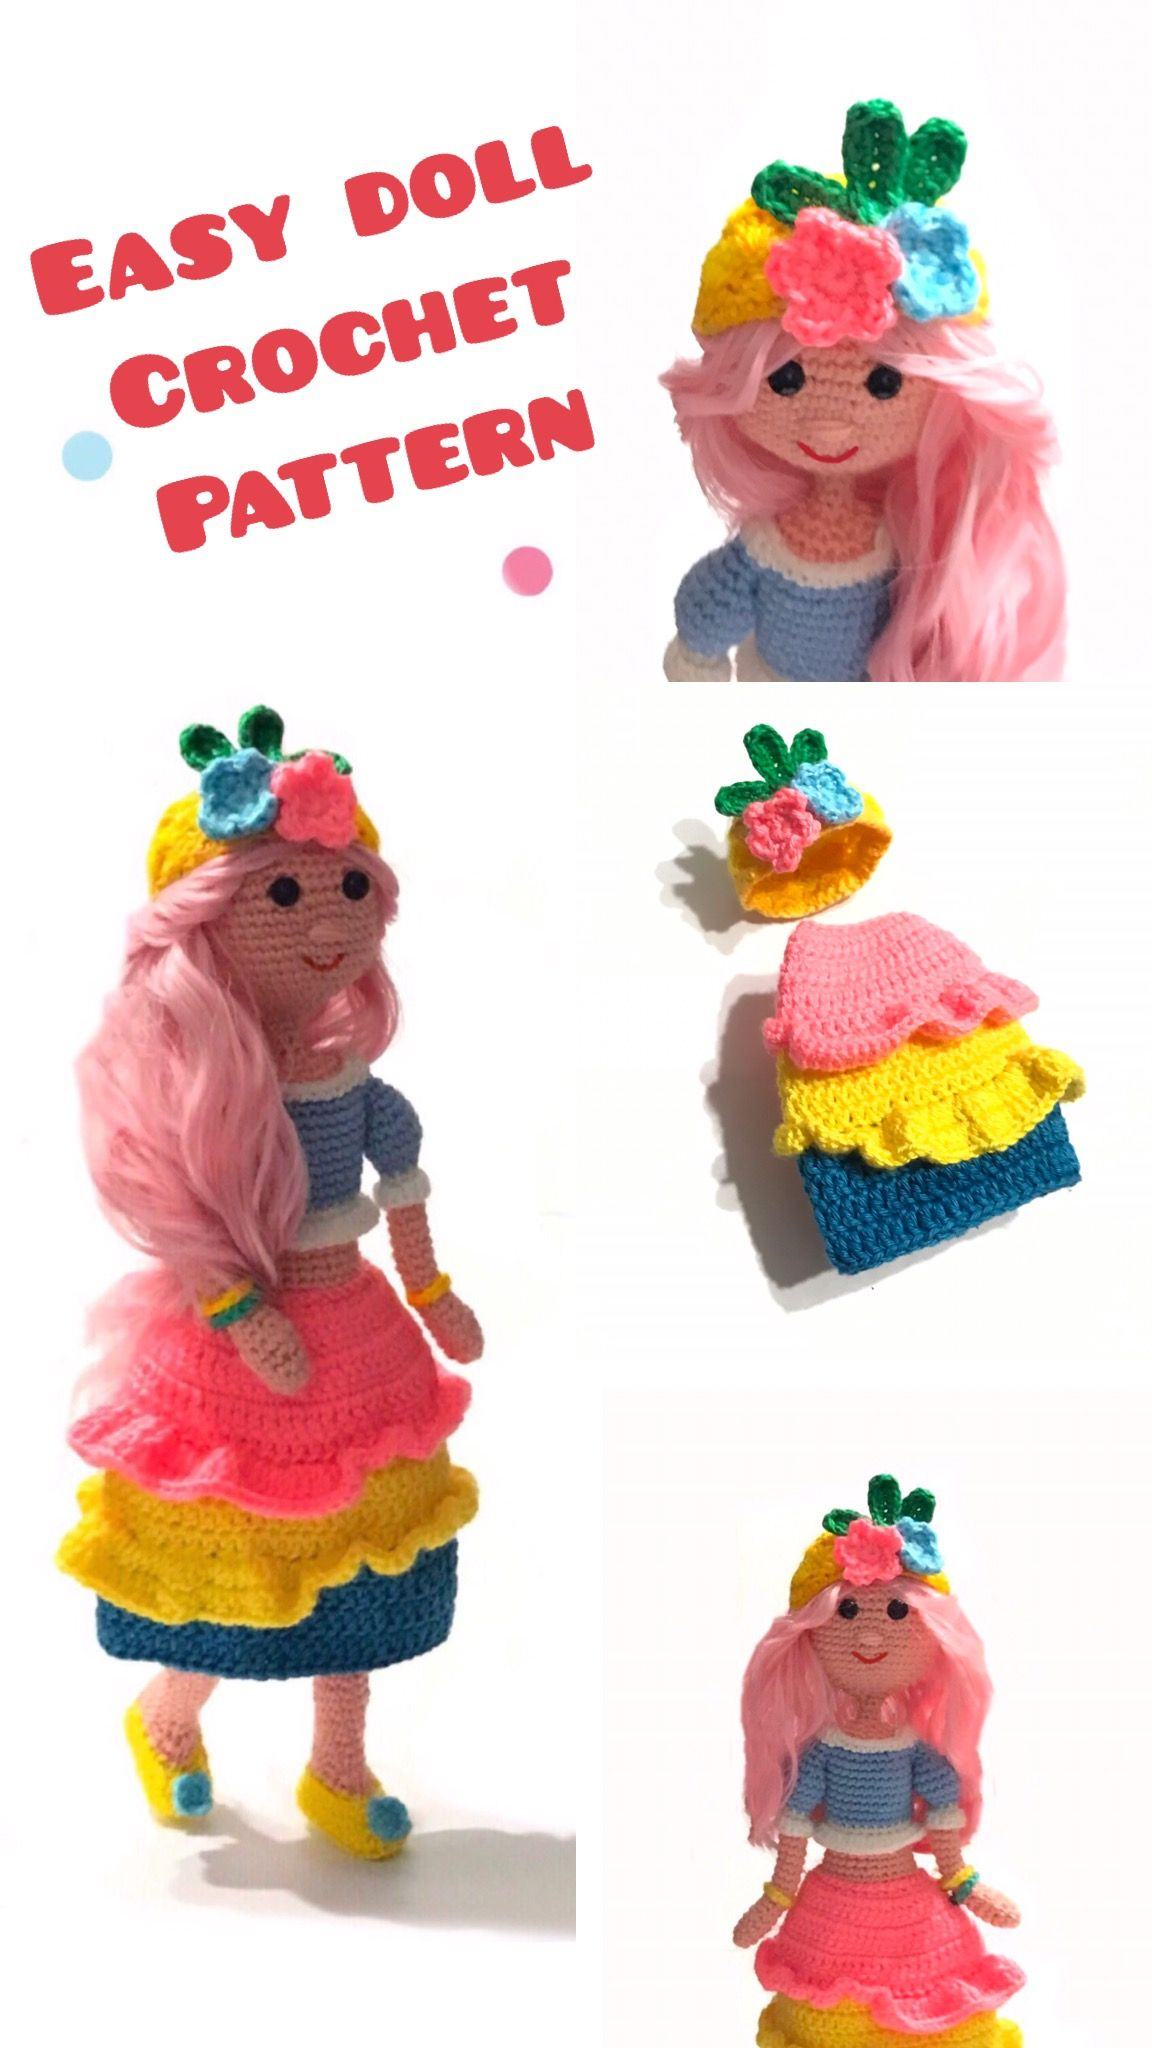 Cute Crochet Patterns Free And Pinterest Favorites | Crochet dolls ... | 2048x1152